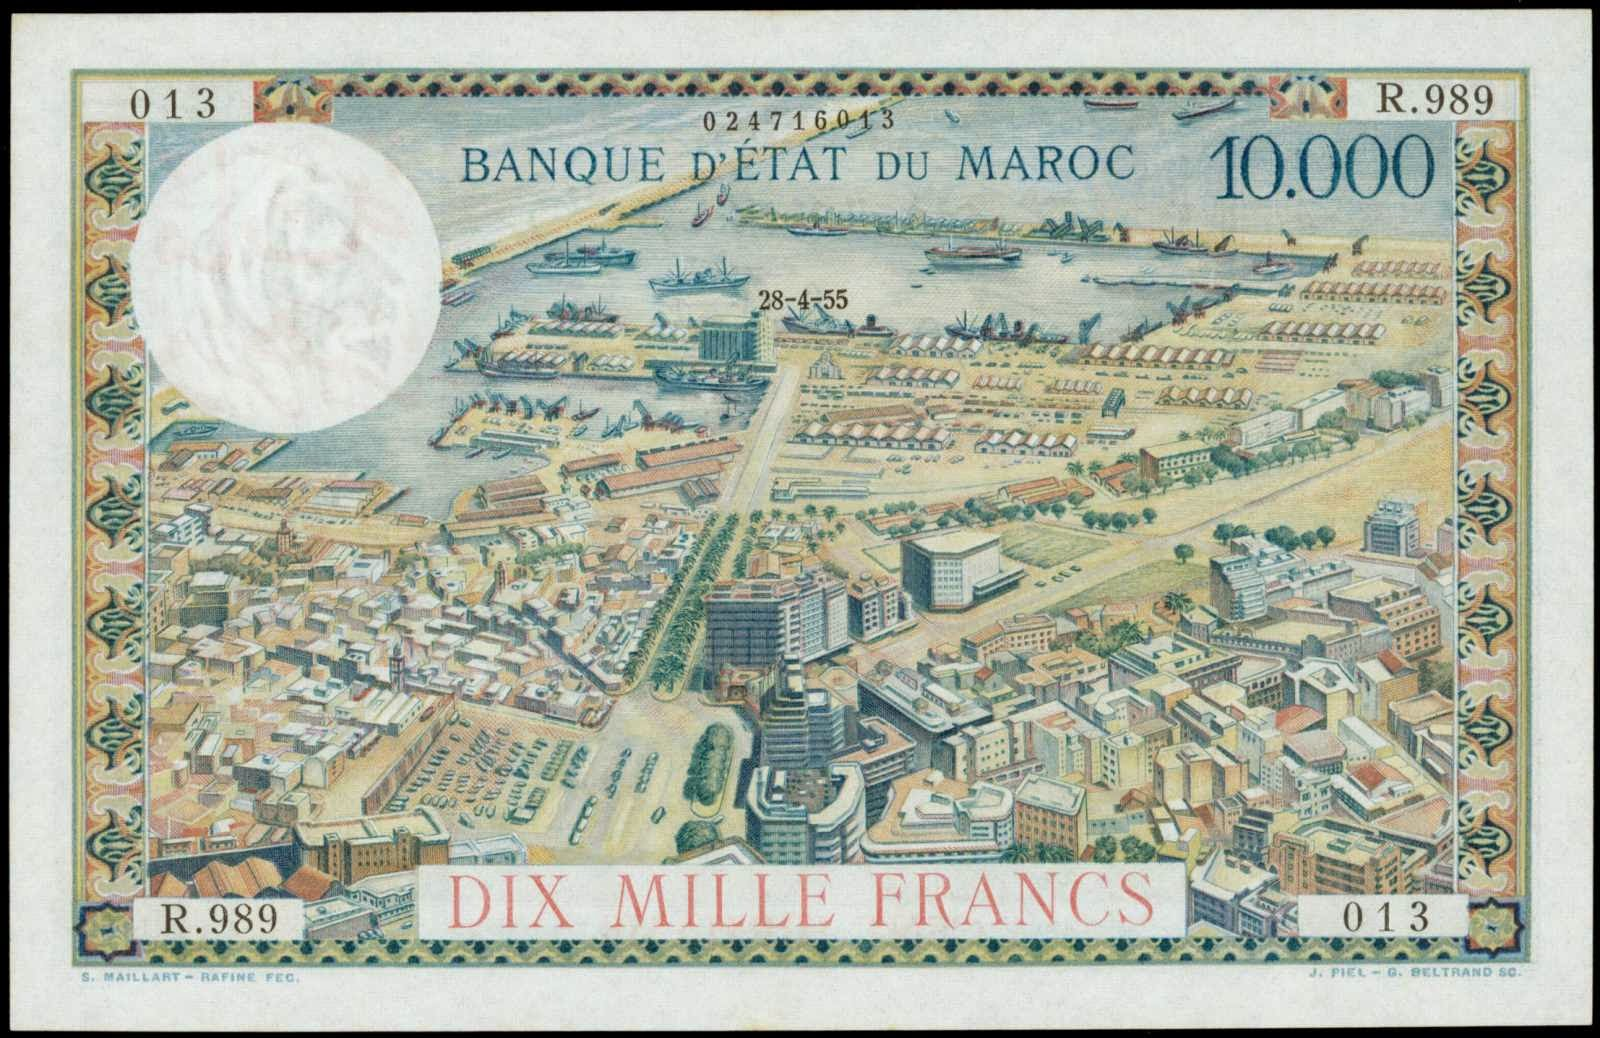 Morocco money currency 100 Dirhams 10000 Francs banknote view of Casablanca